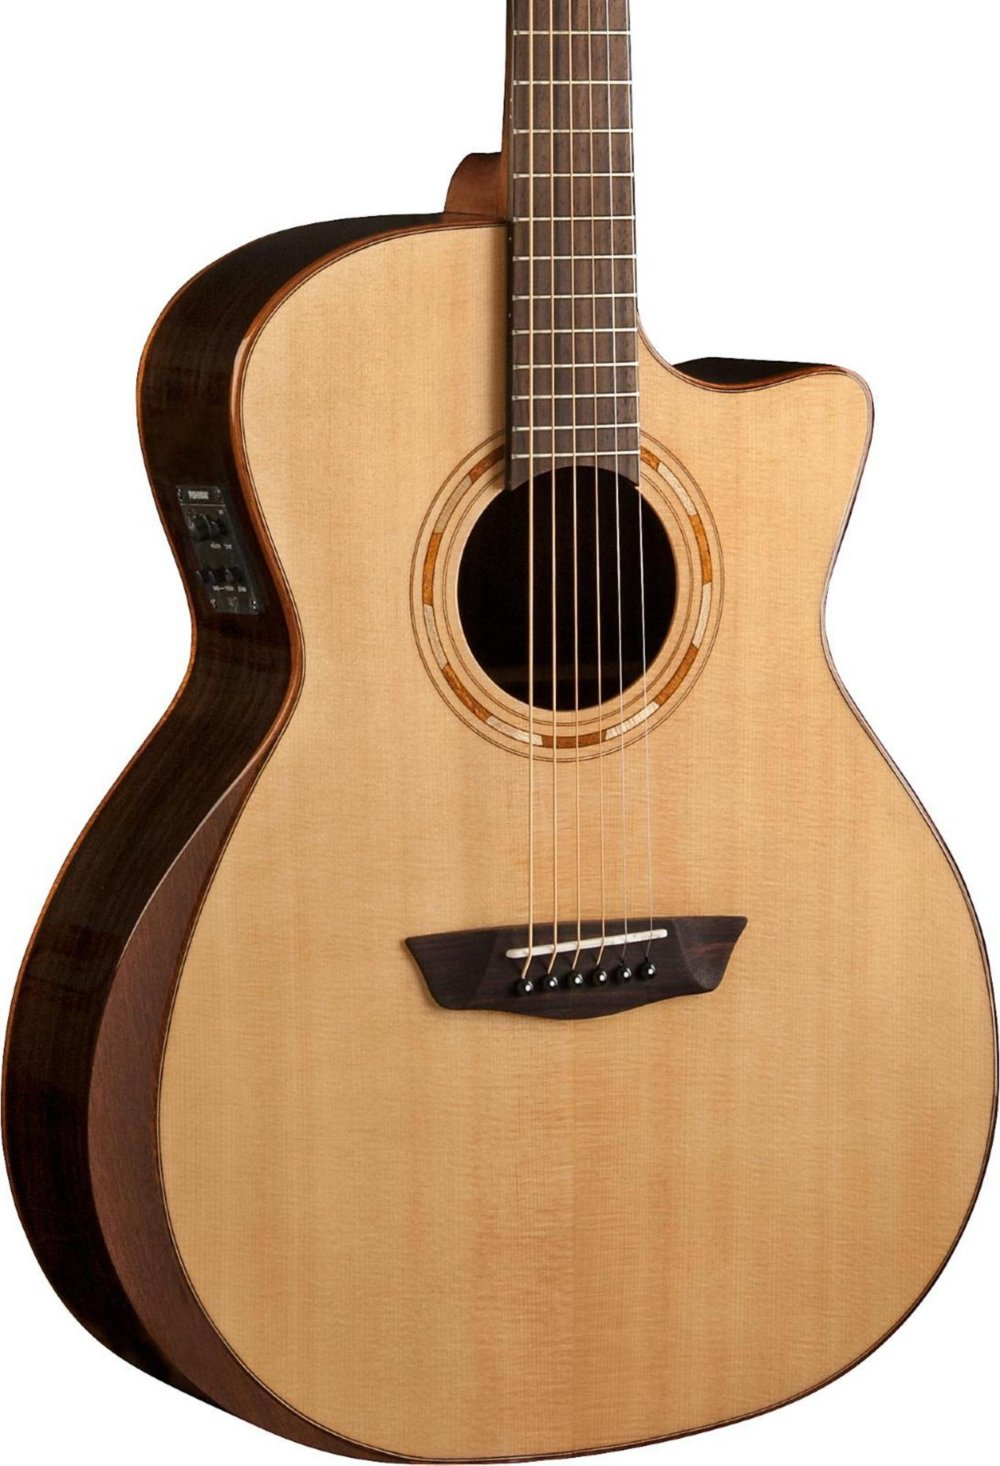 Washburn Comfort Series USM-WCG20SCE Acoustic-Electric Guitar Natural by Washburn